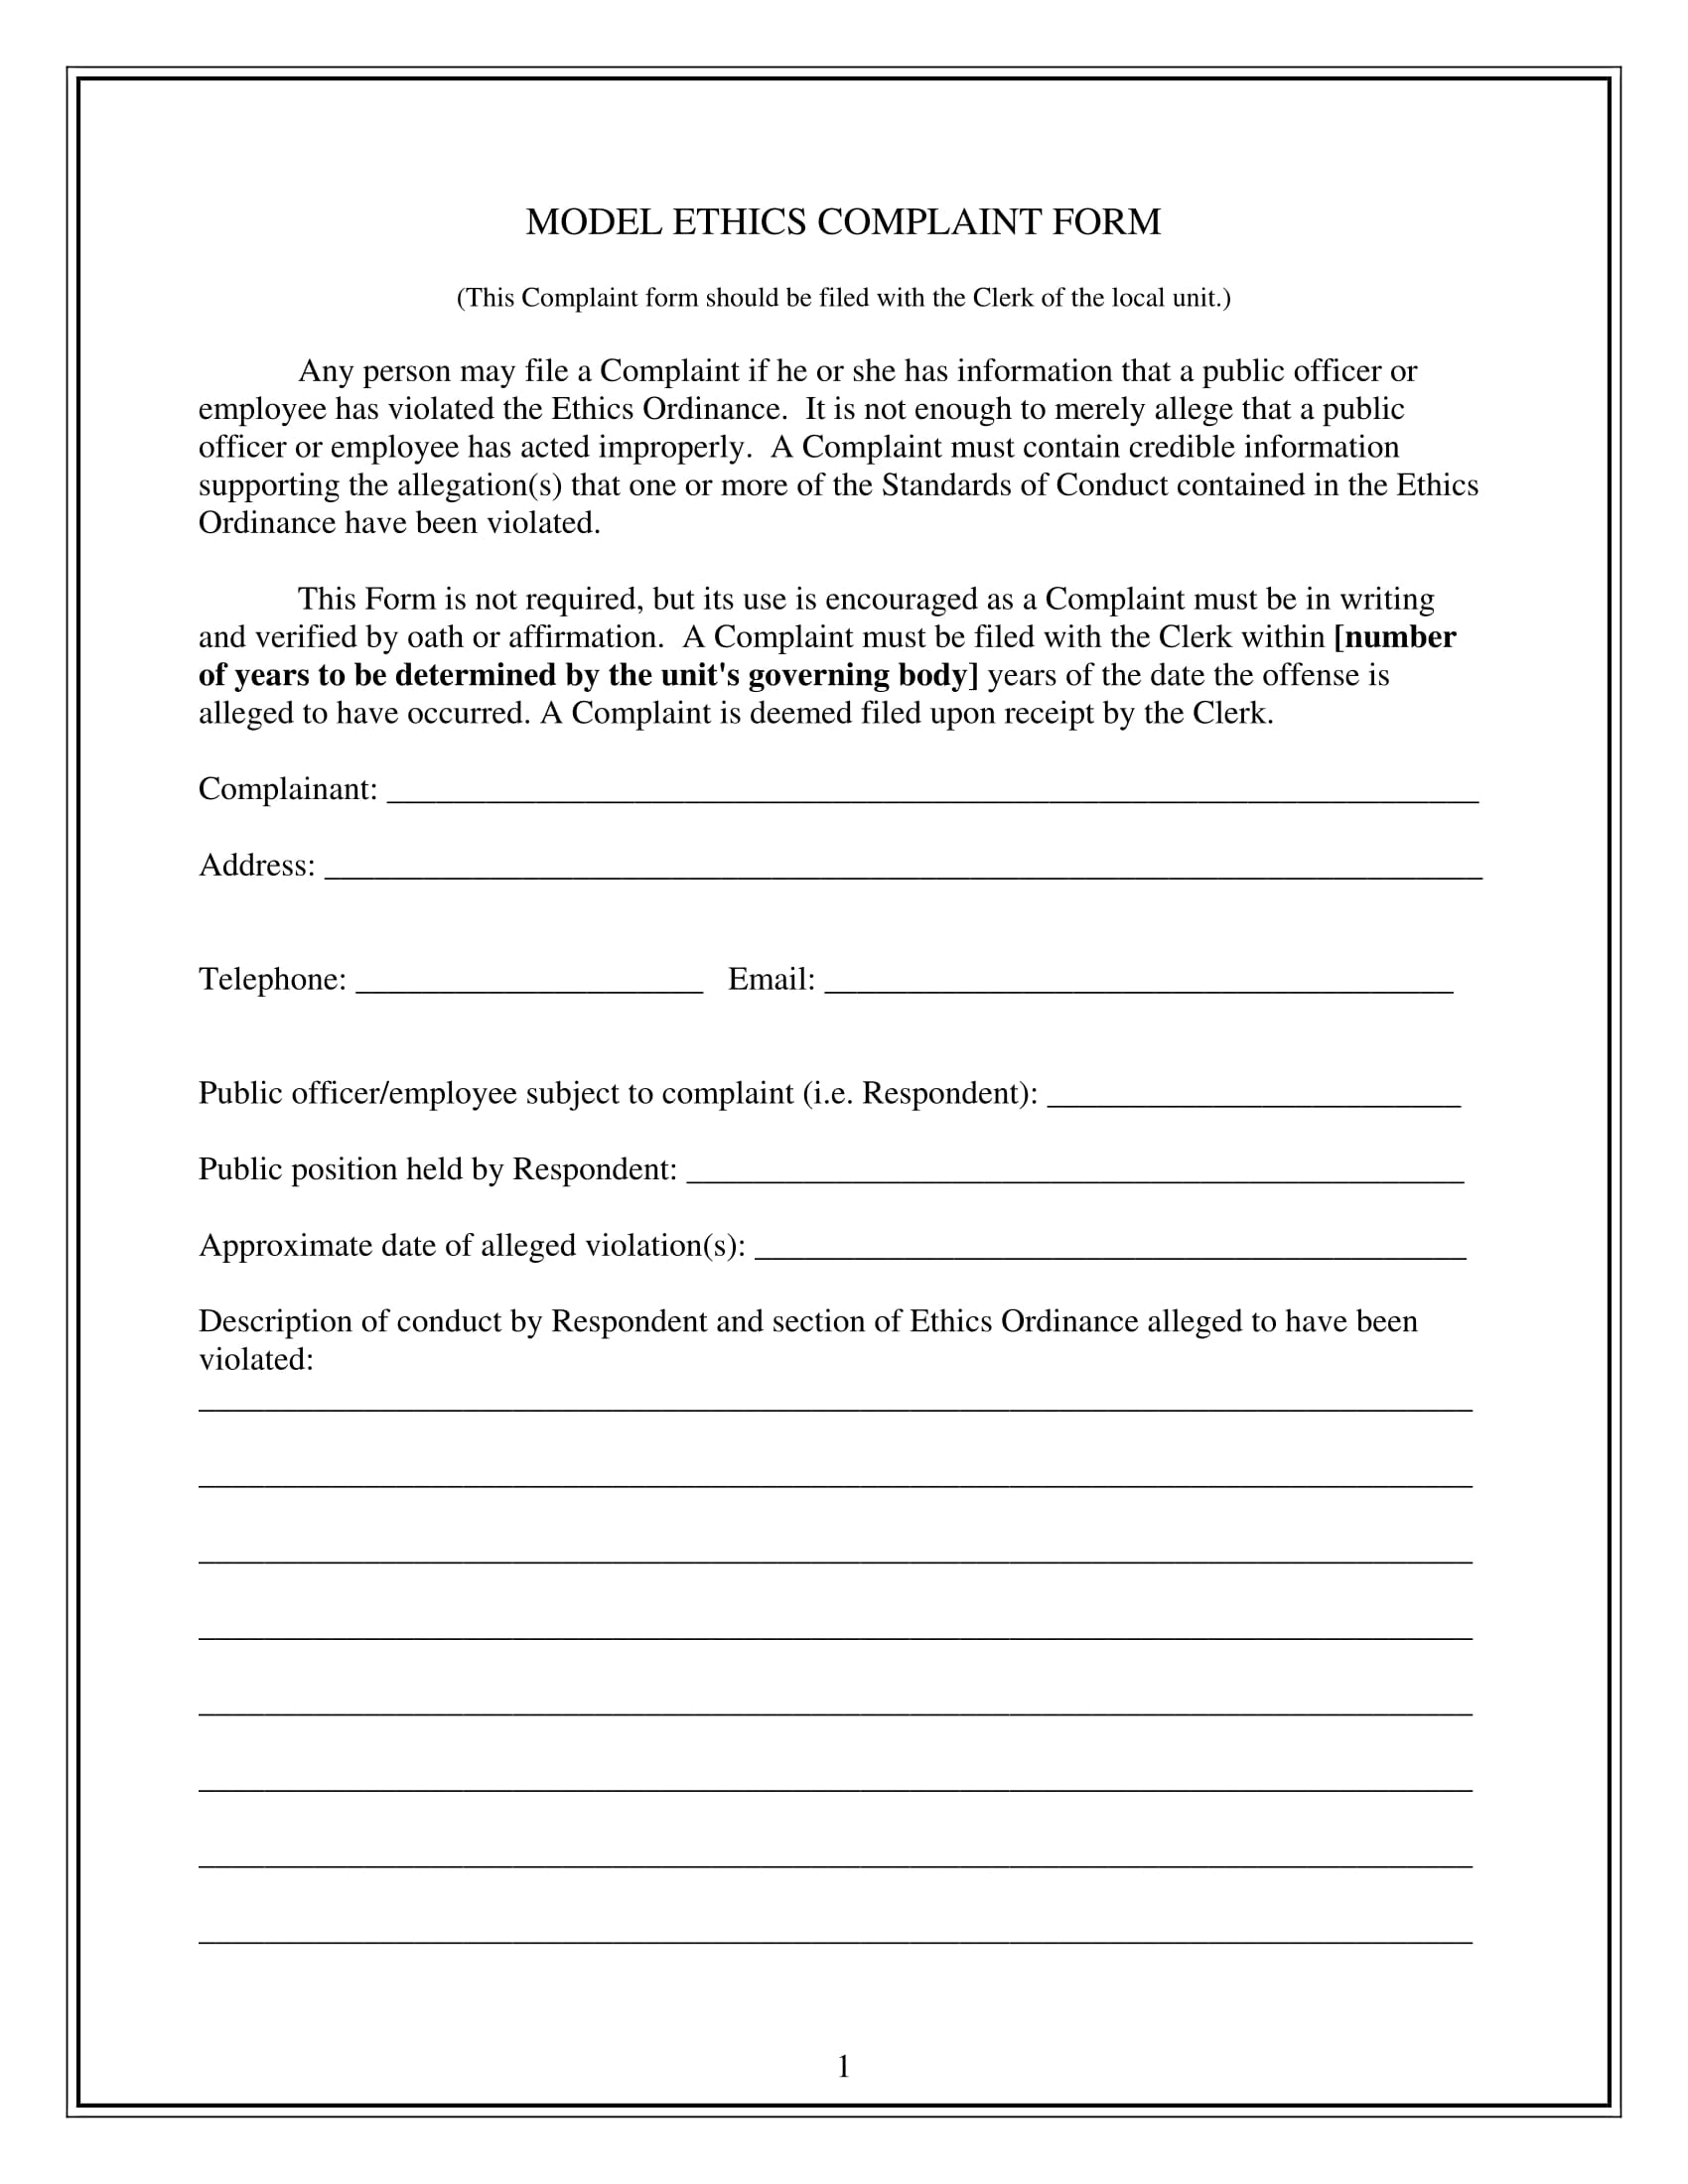 model ethics complaint form 1